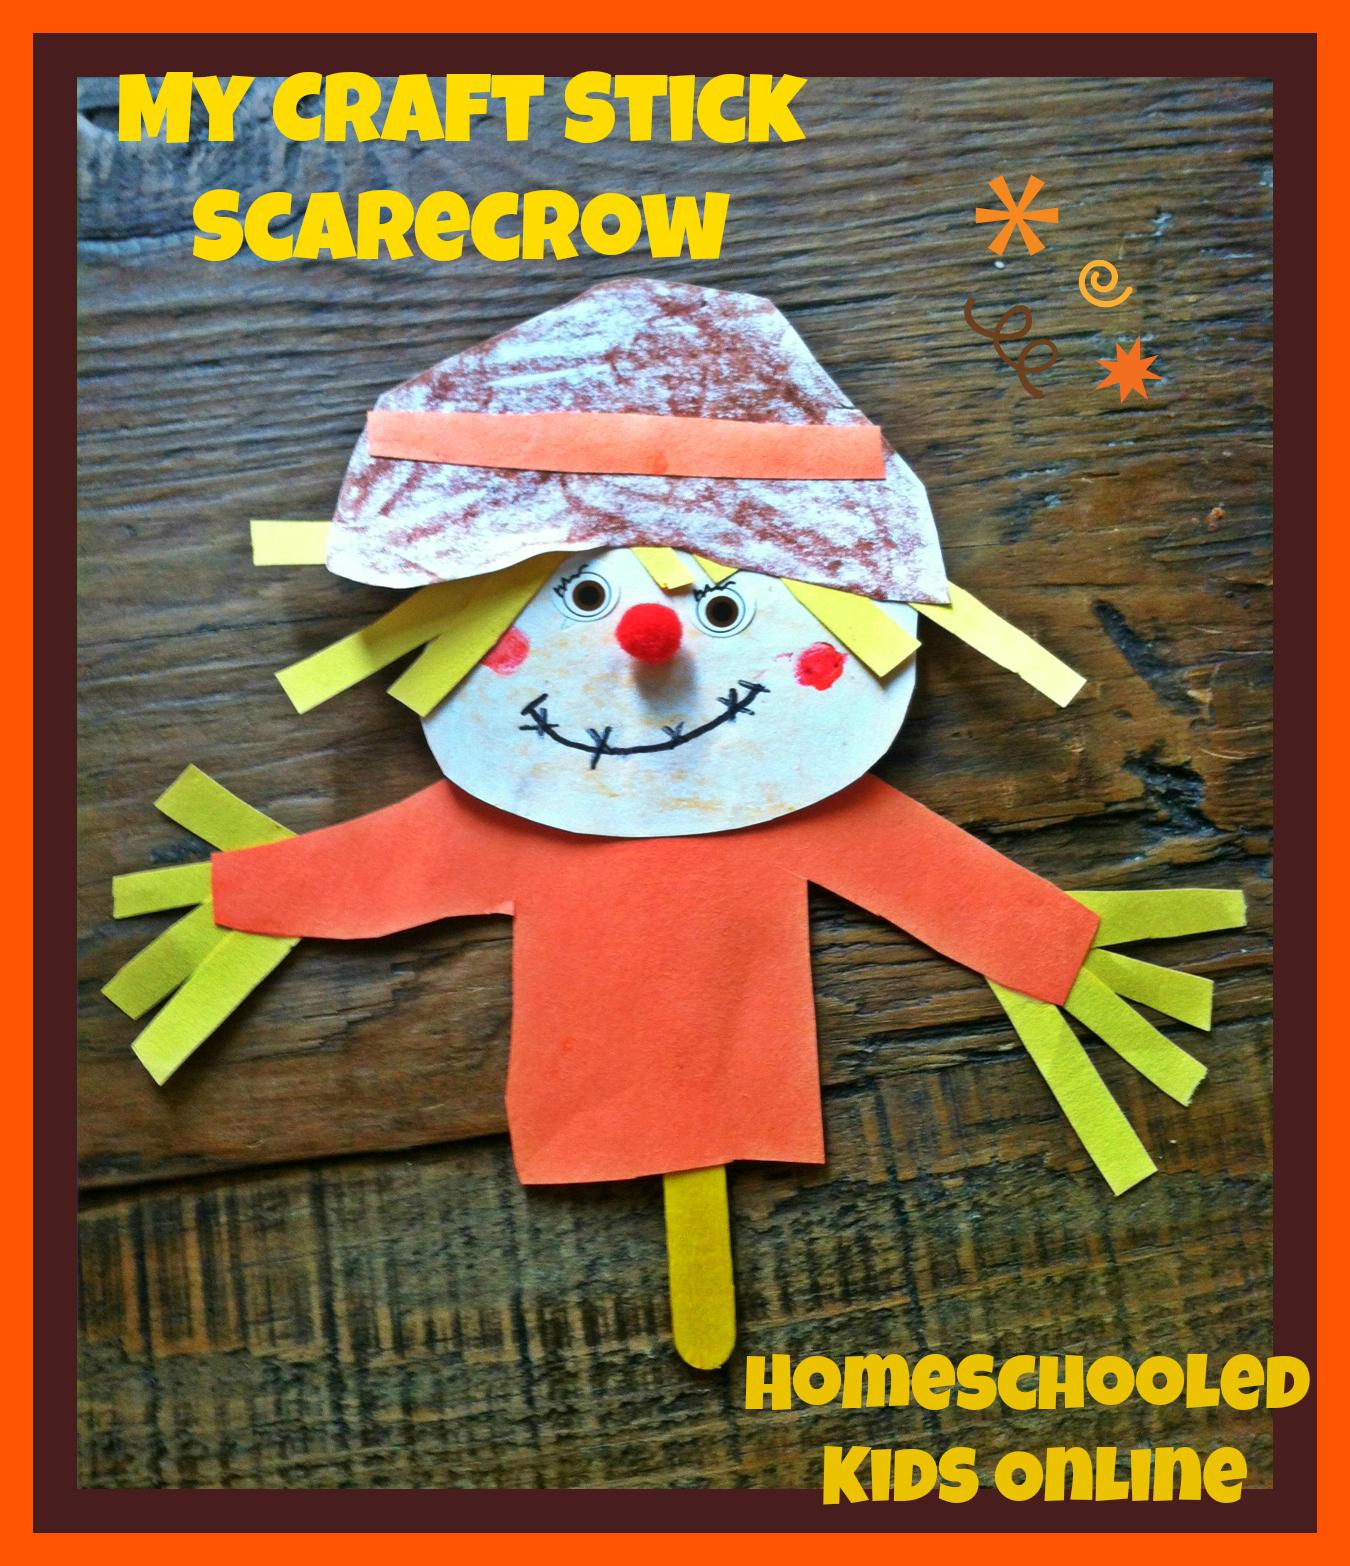 Magazine For Homeschooled Kids » Fall Crafts For Kids